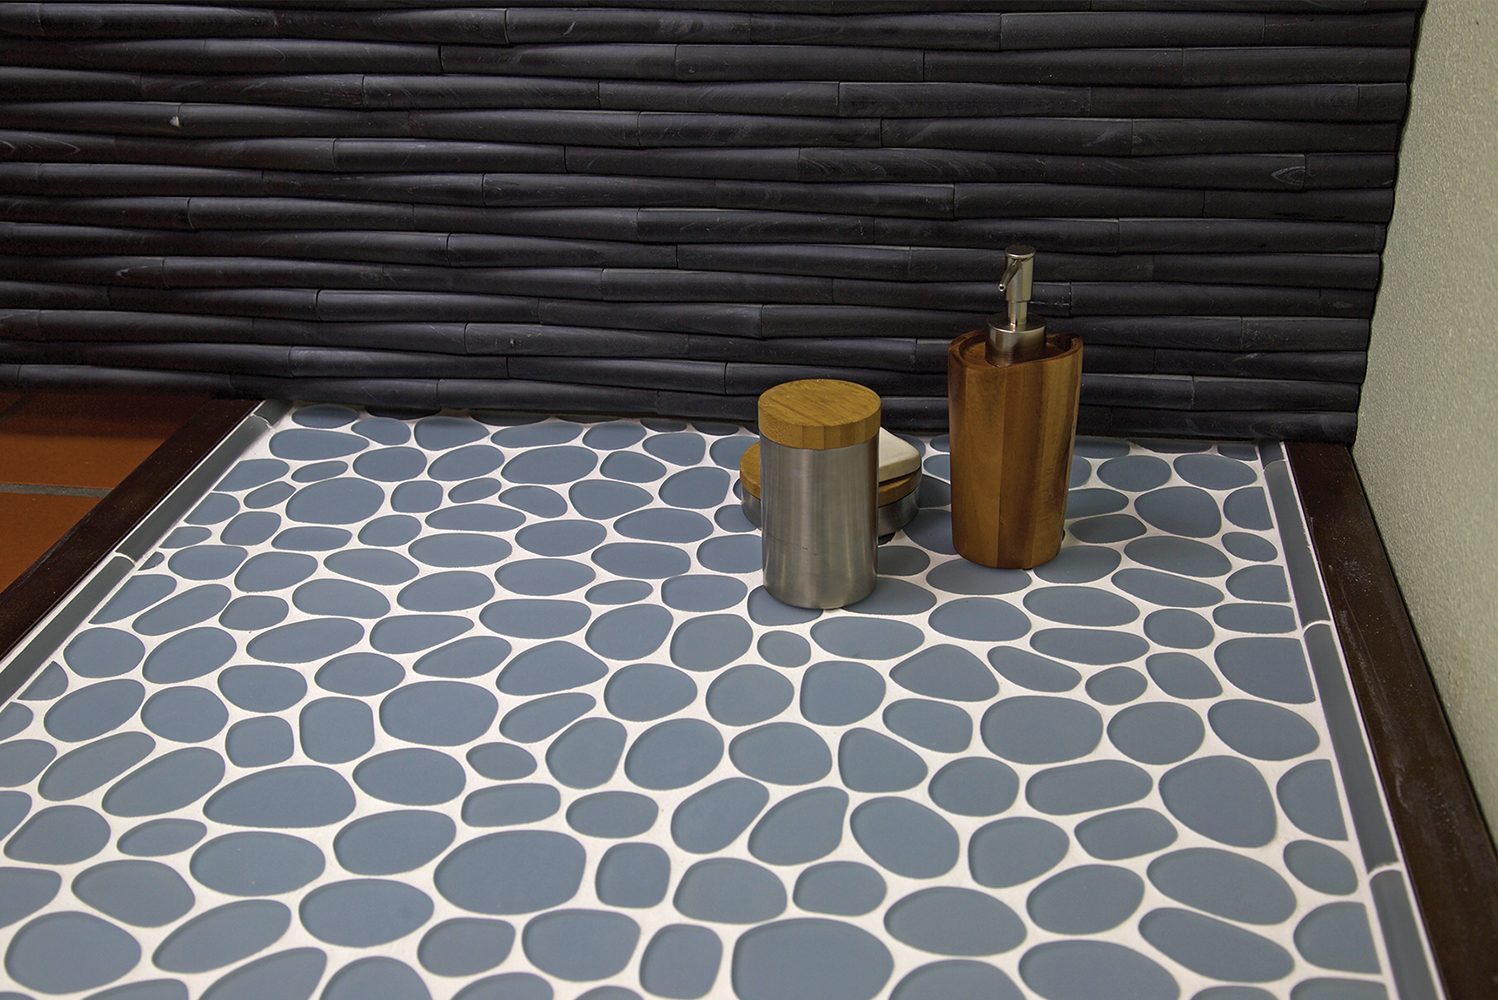 The tile series can be used for floors and walls.